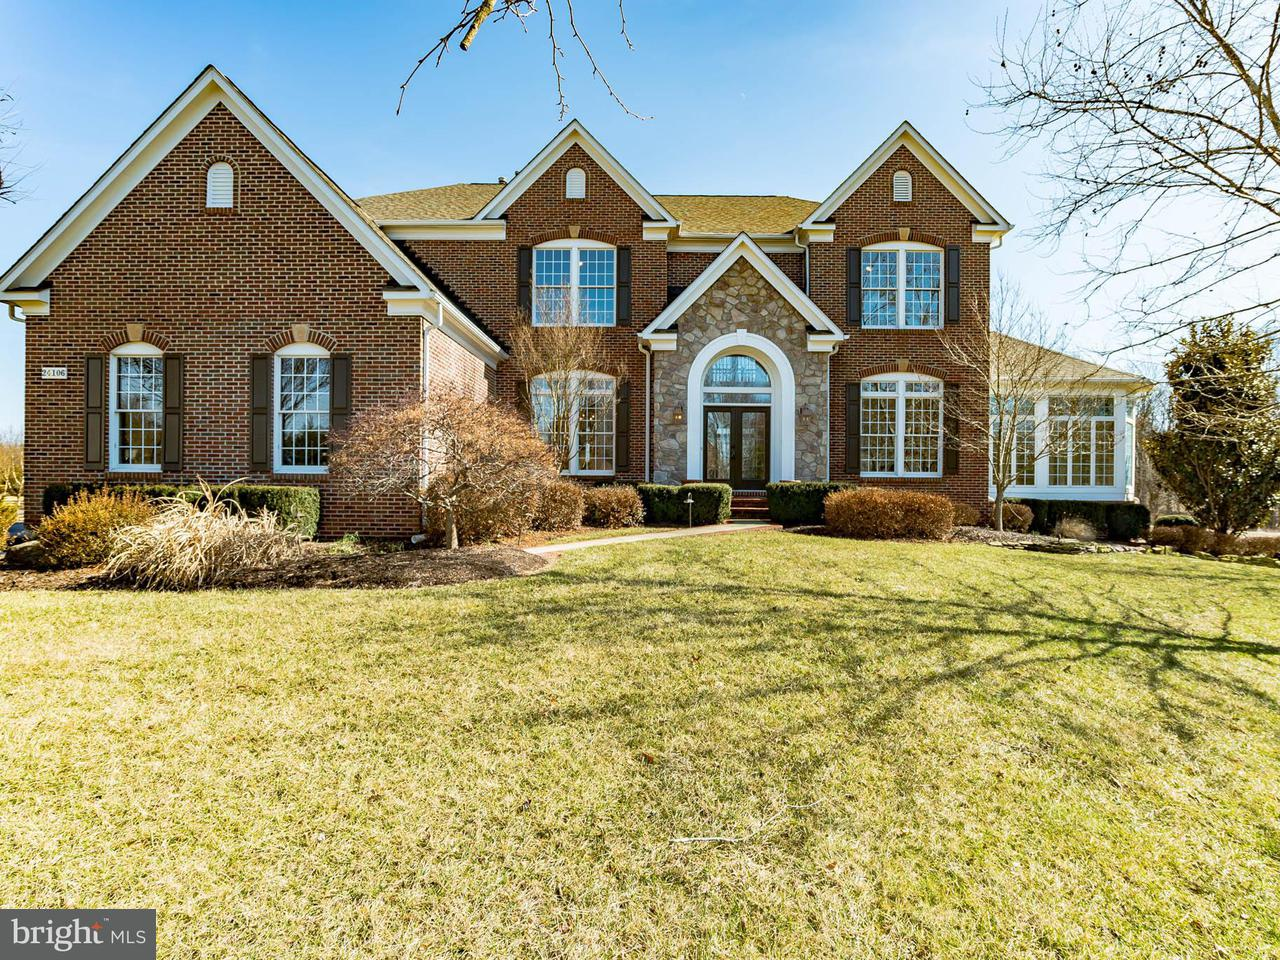 Single Family Home for Sale at 24106 Mercers Crossing Court 24106 Mercers Crossing Court Aldie, Virginia 20105 United States